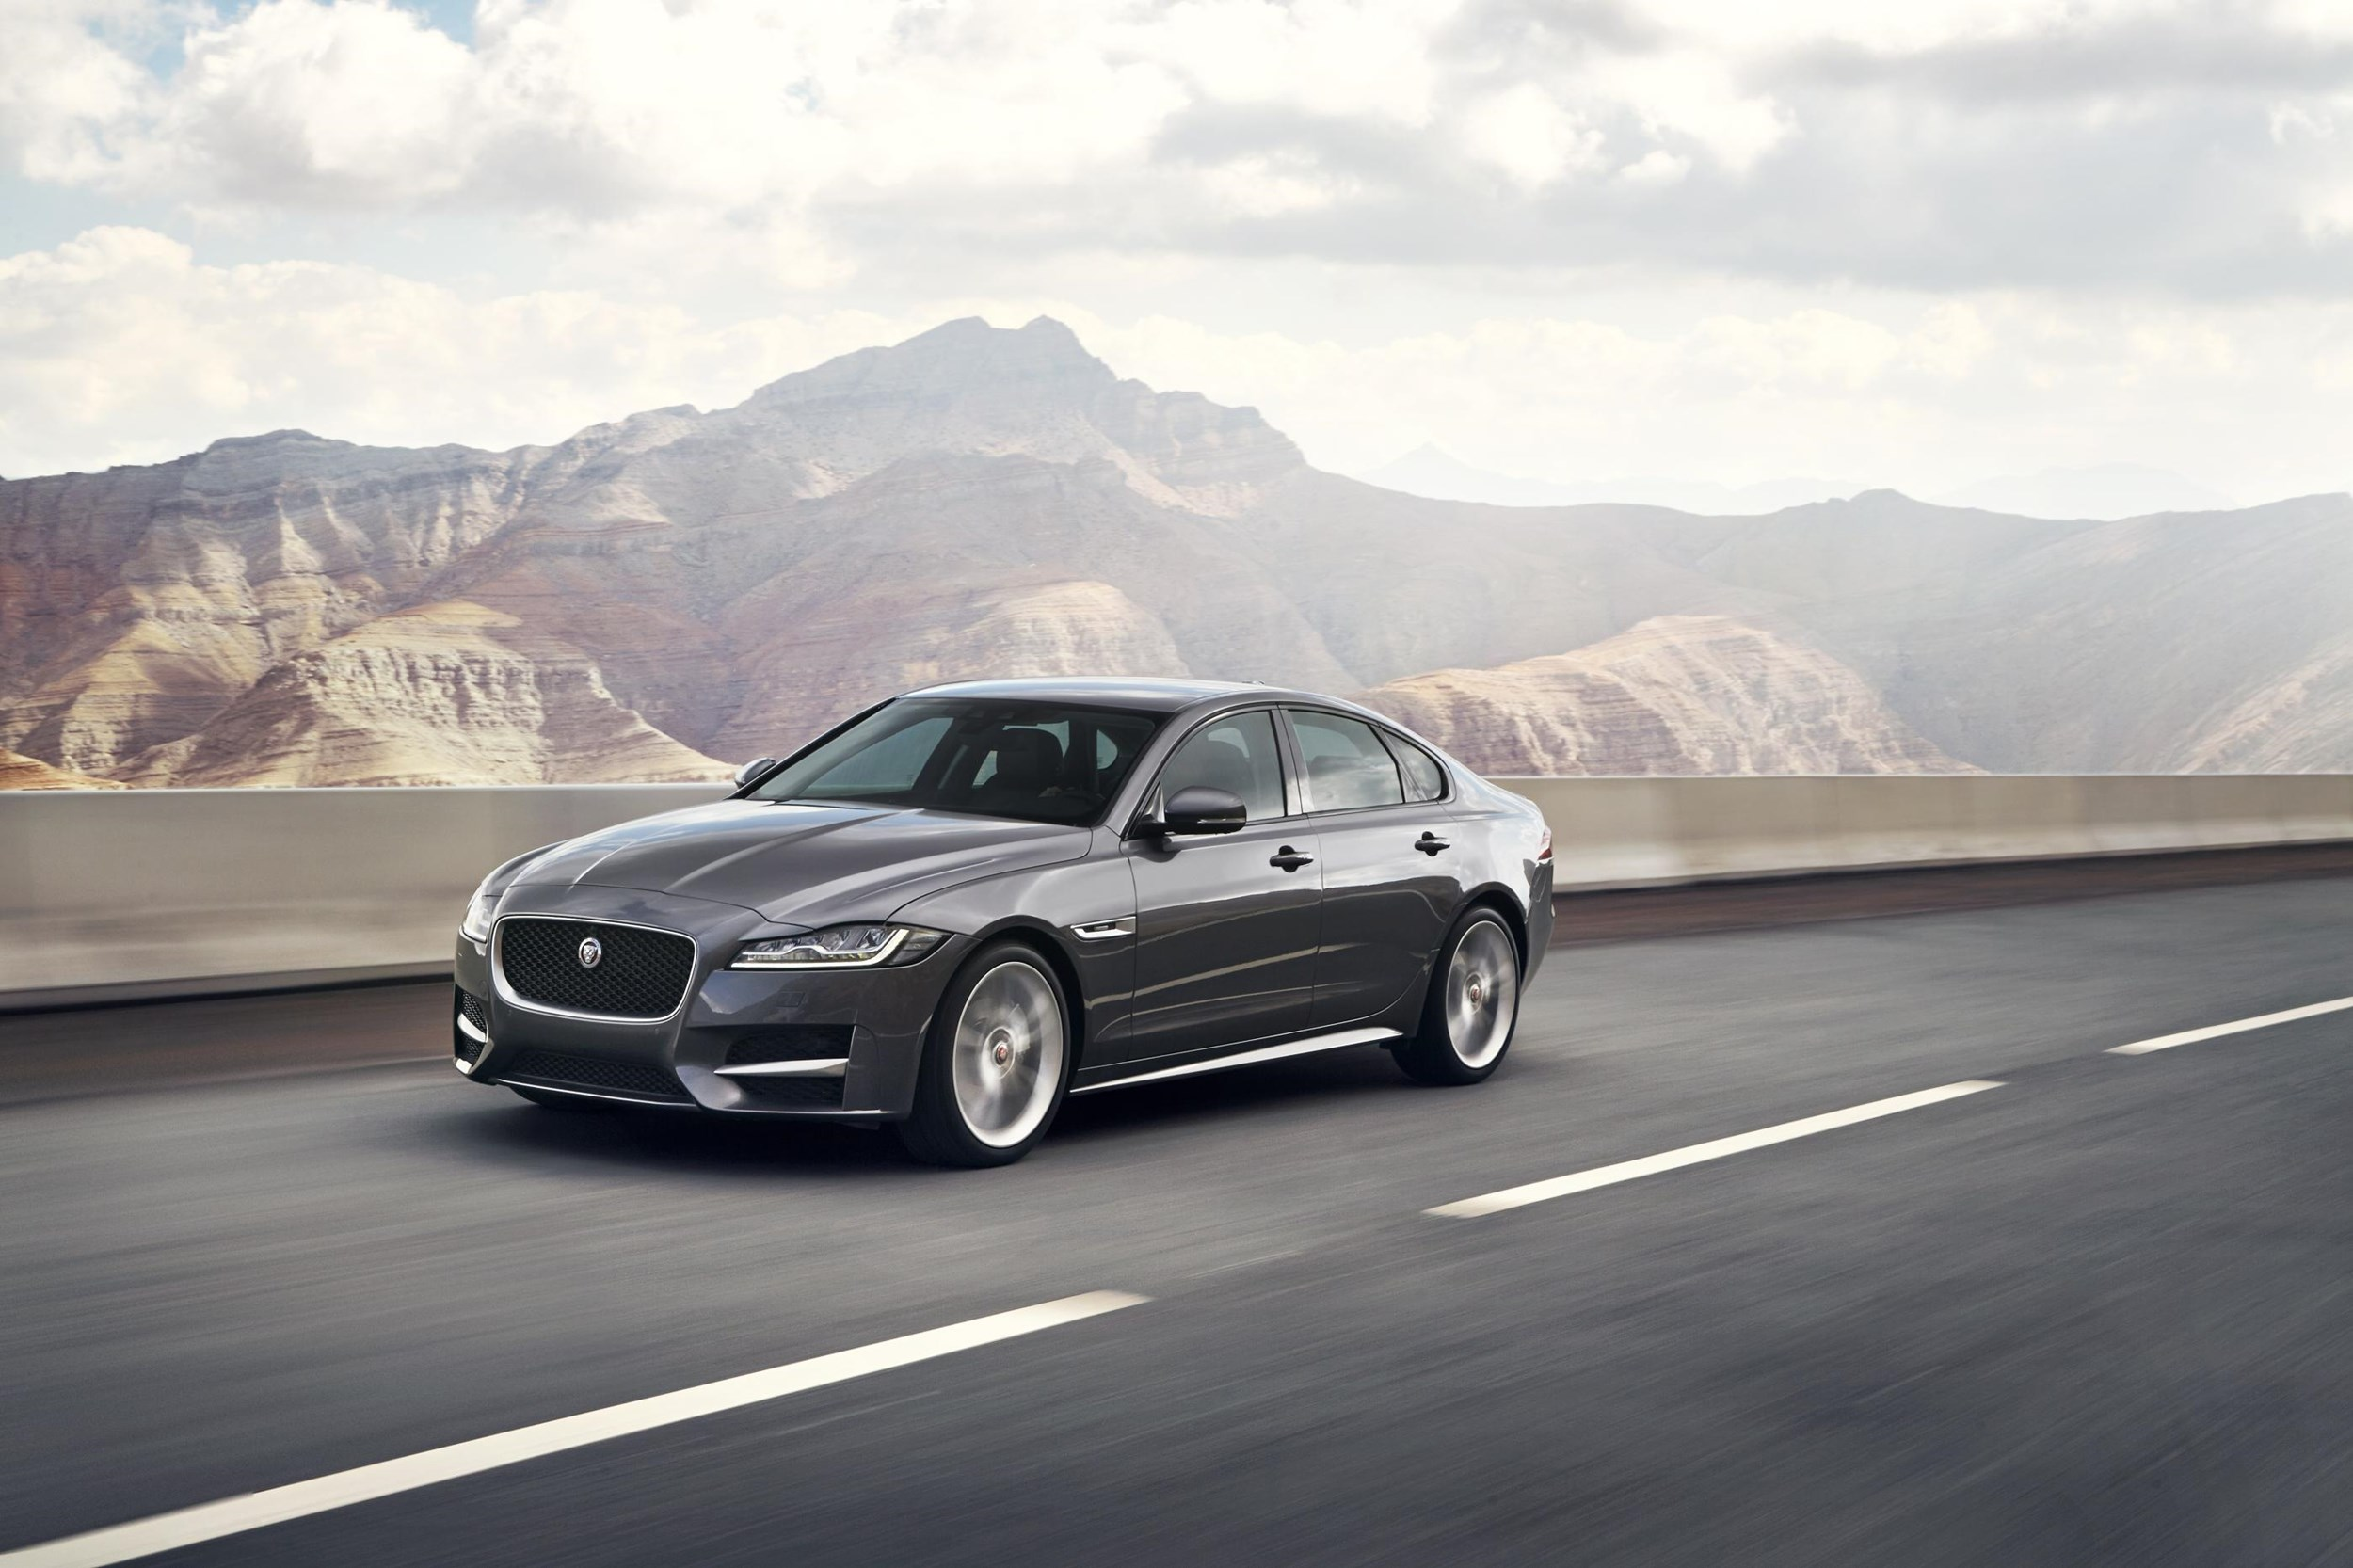 new dawn as grandaurora hearse to s latest jaguar xf the pilatos superiorvehicles uk comes pilato